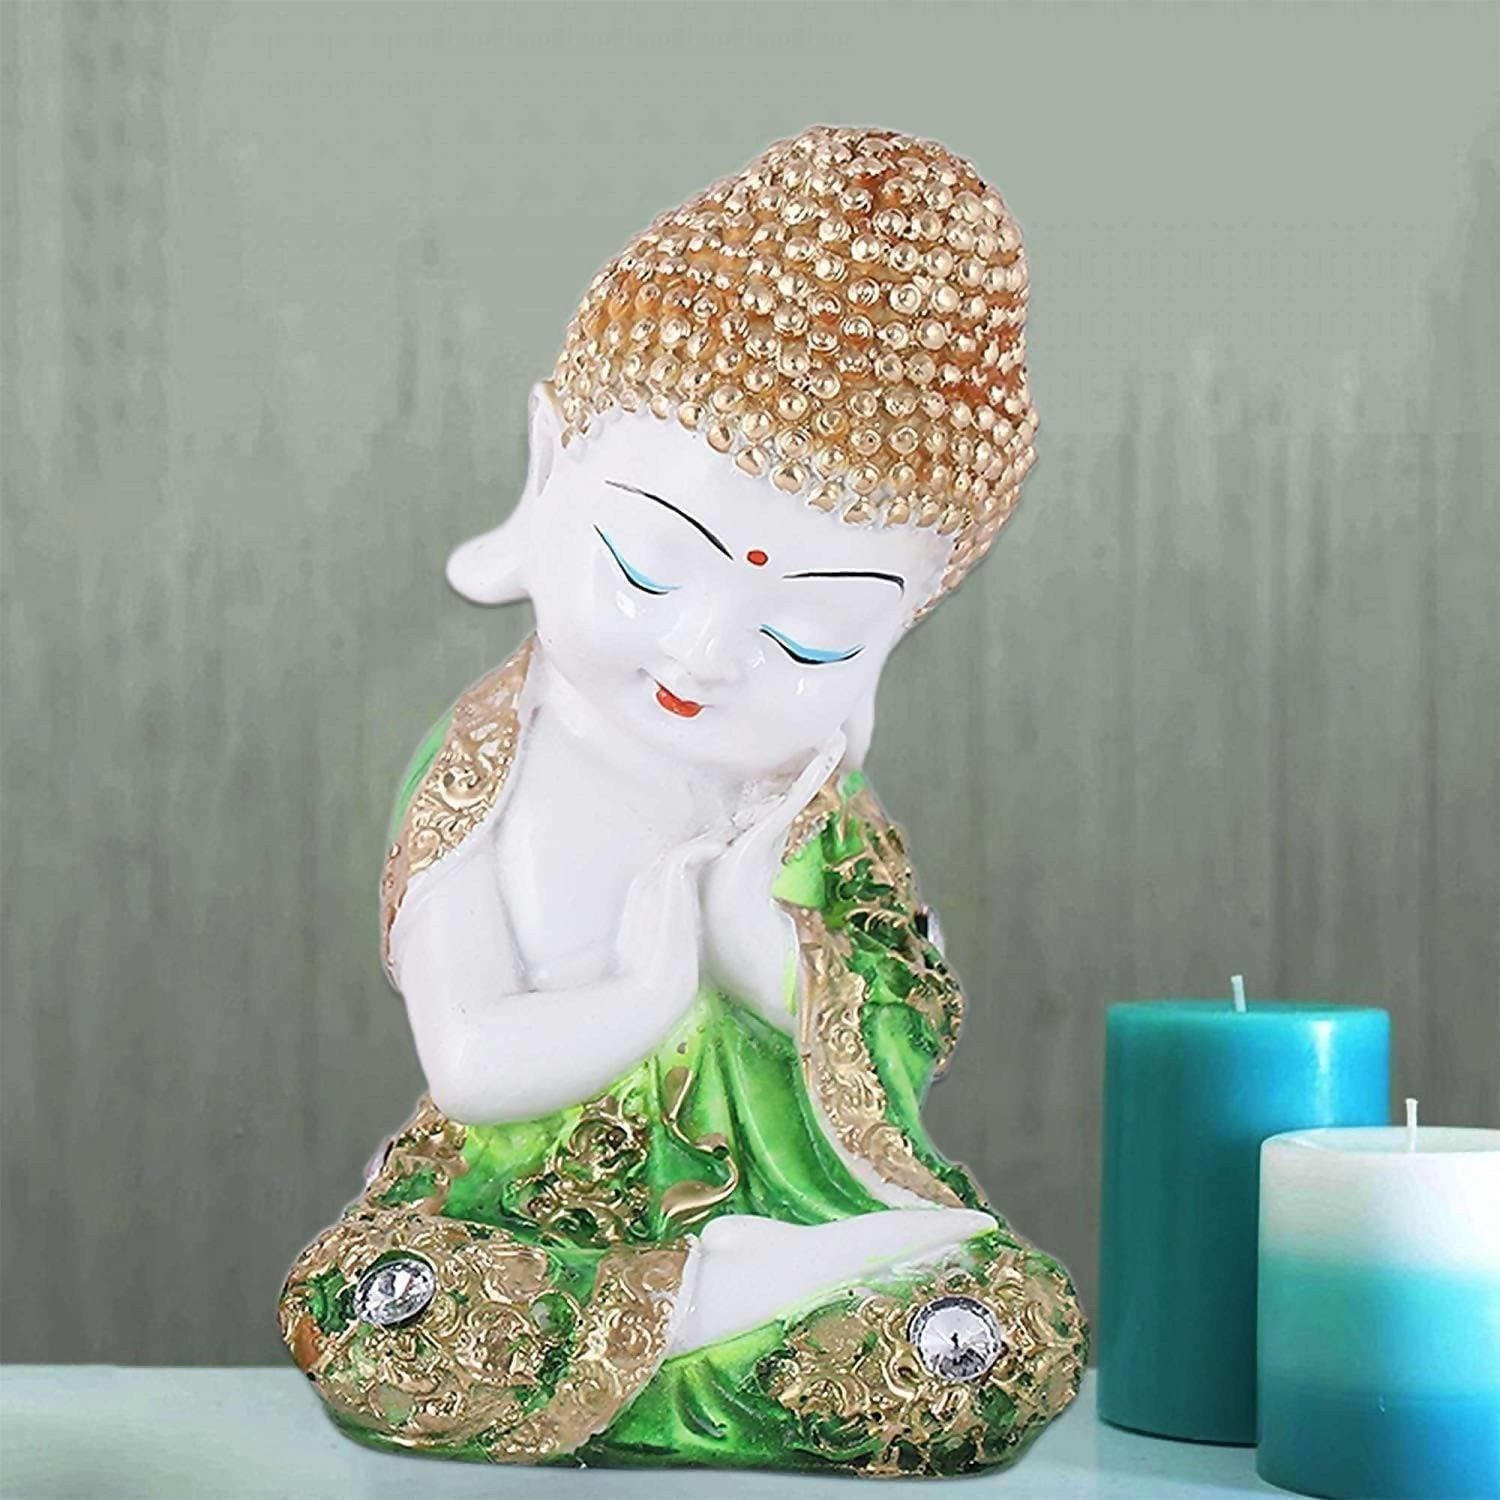 Buddha Statue for Home Decor House Warming Gift Peace and Harmony